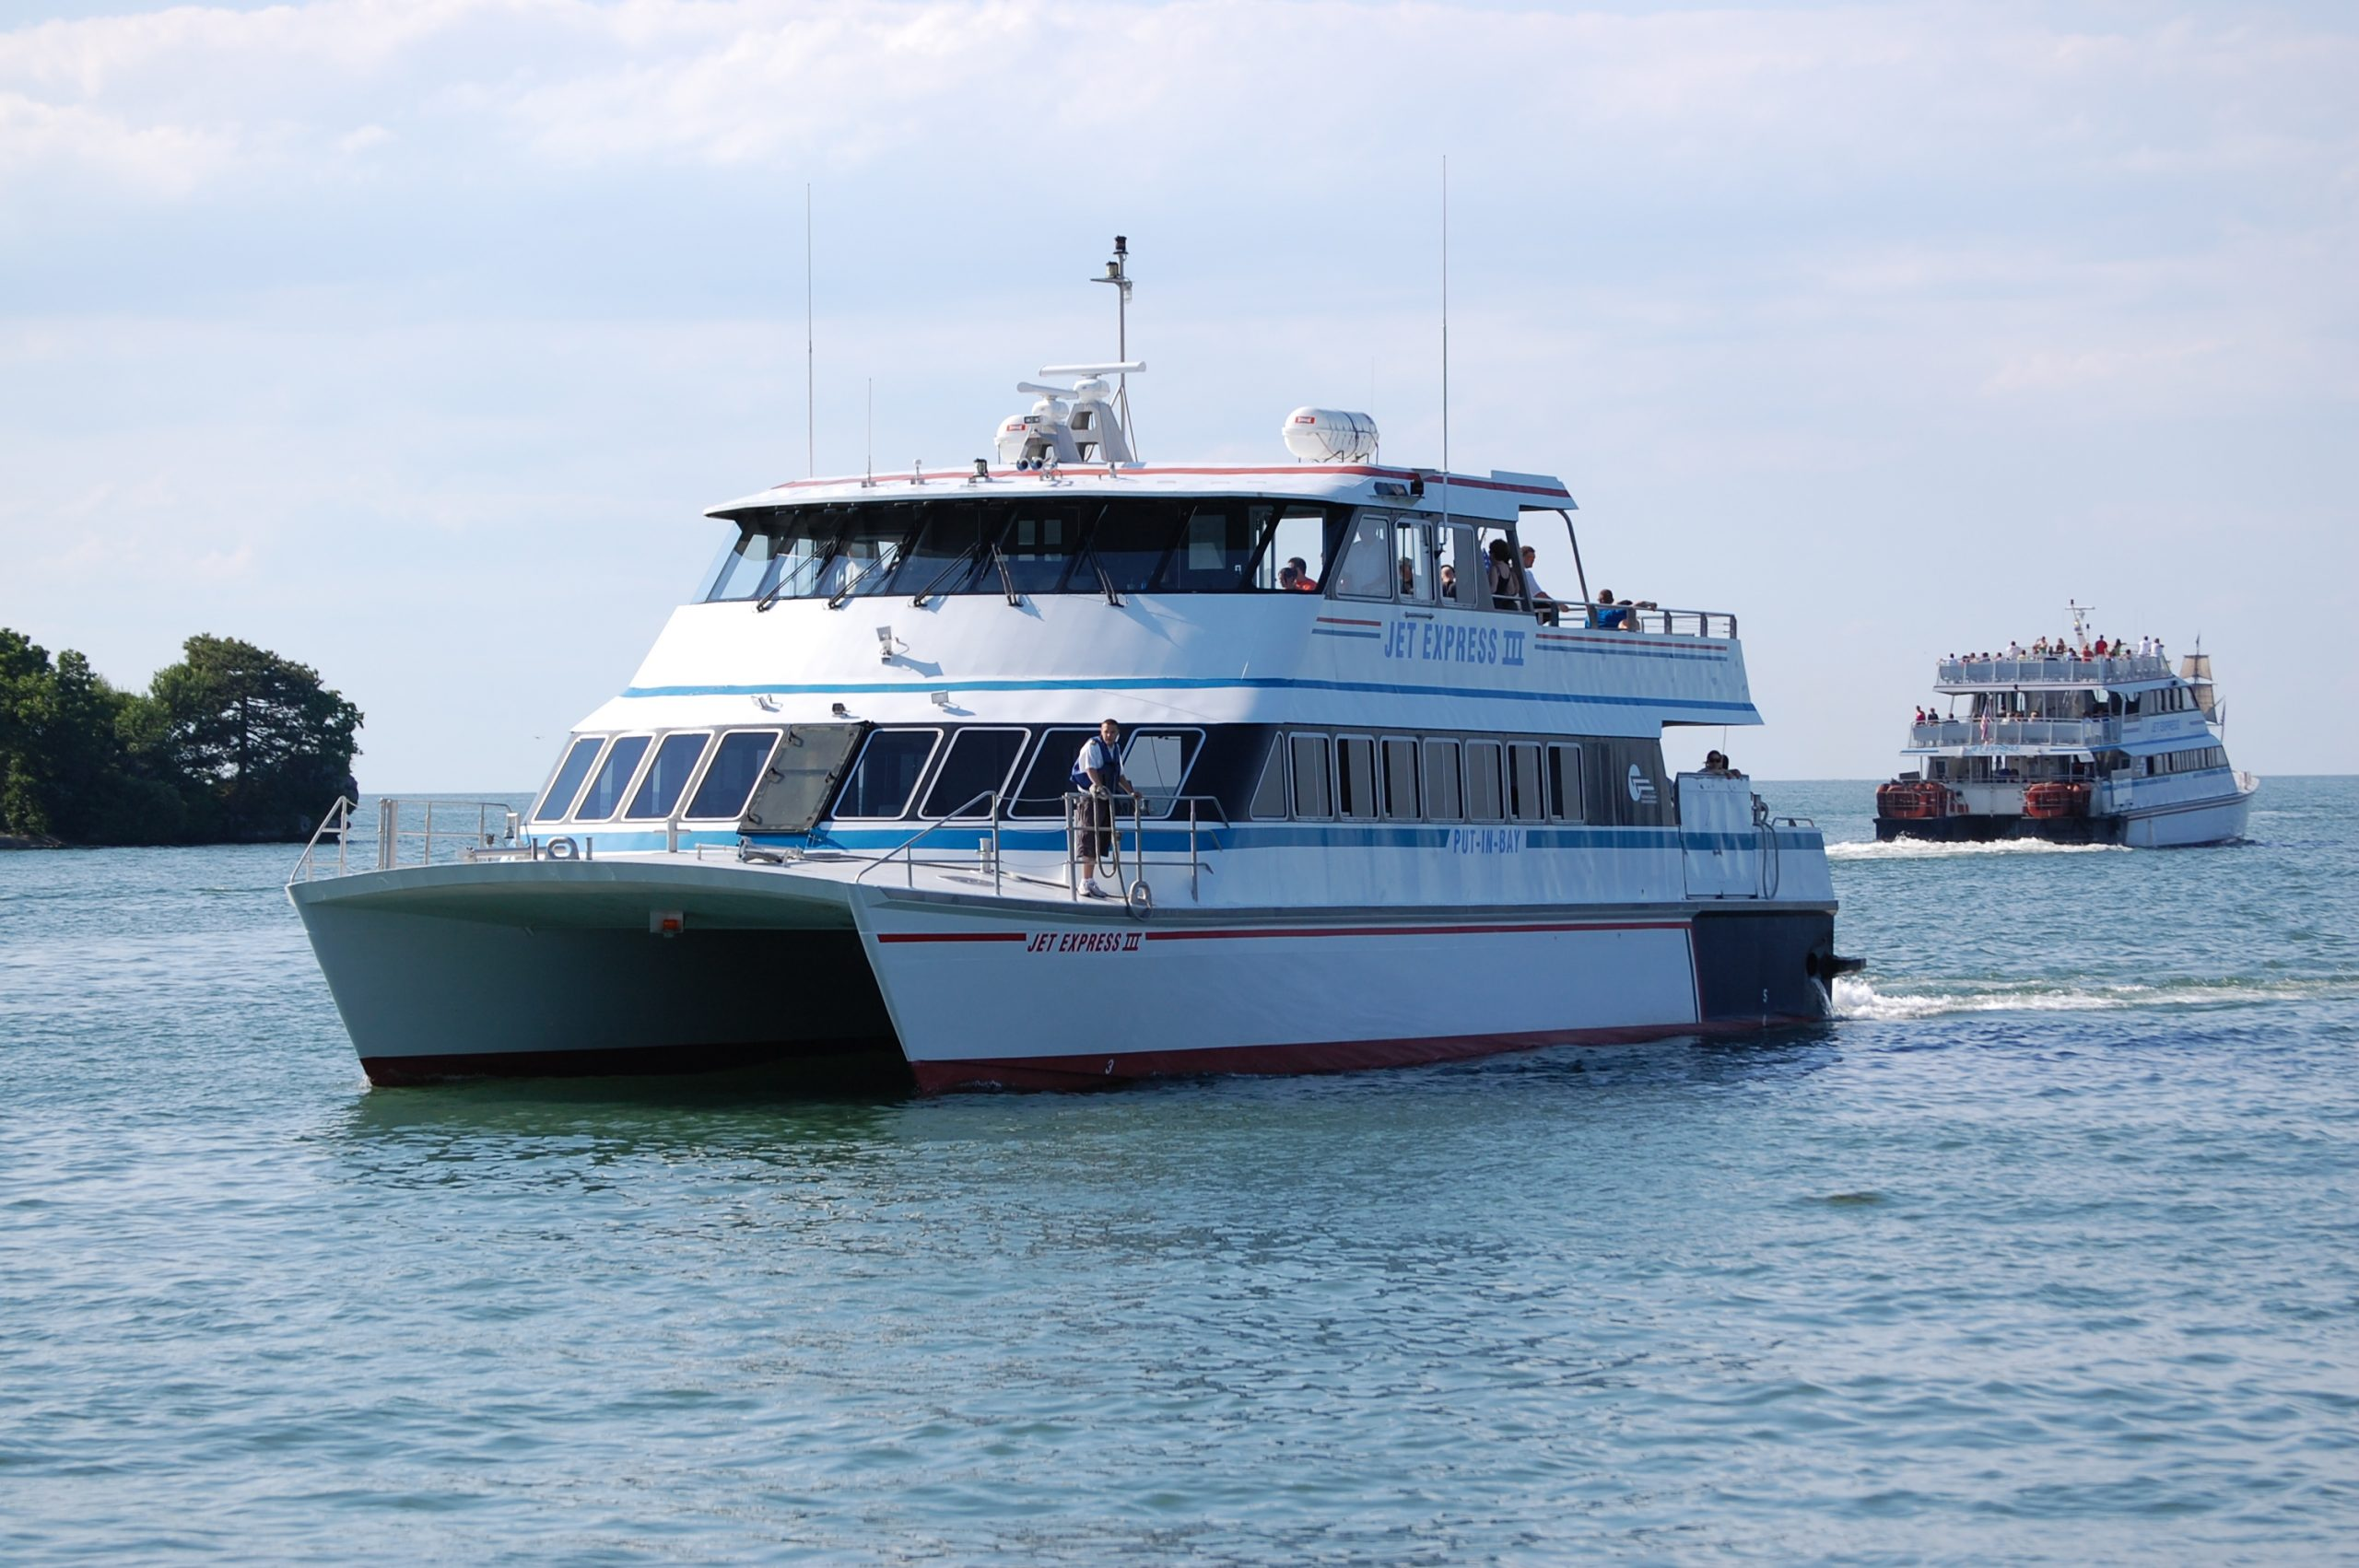 The Best 10 Beaches in Cleveland Ohio That You MUST Visit! 3 jetboat4 scaled